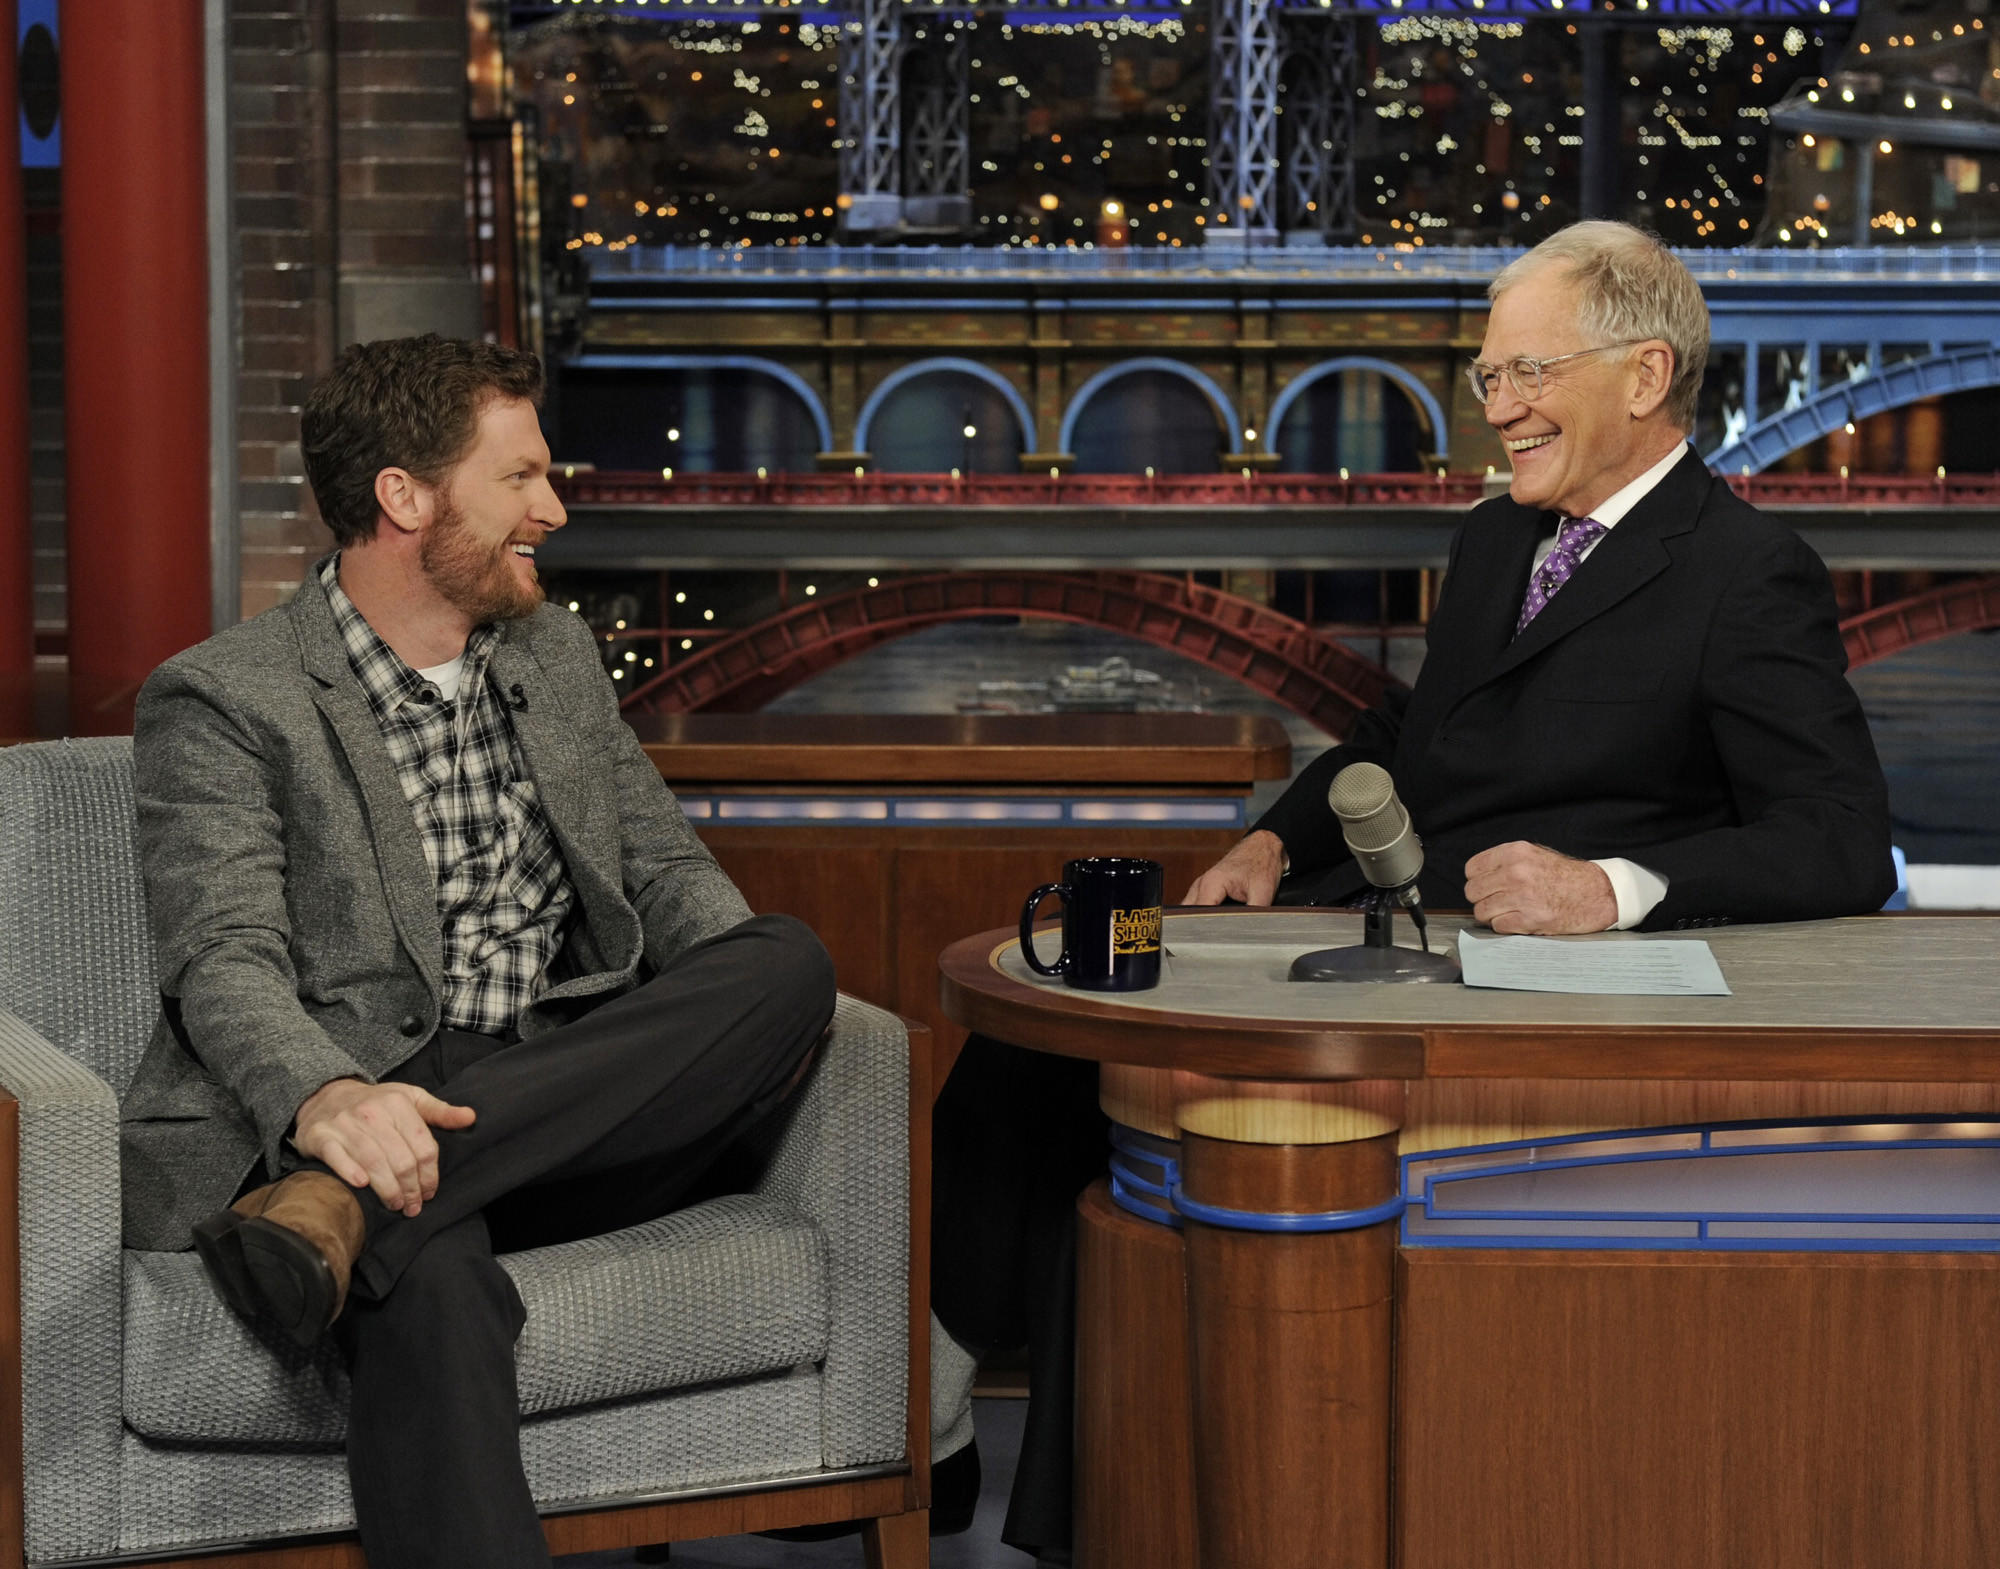 Dale Earnhardt Jr. talks to David Letterman about his second time winning the Daytona 500 on the Late Show with David Letterman.